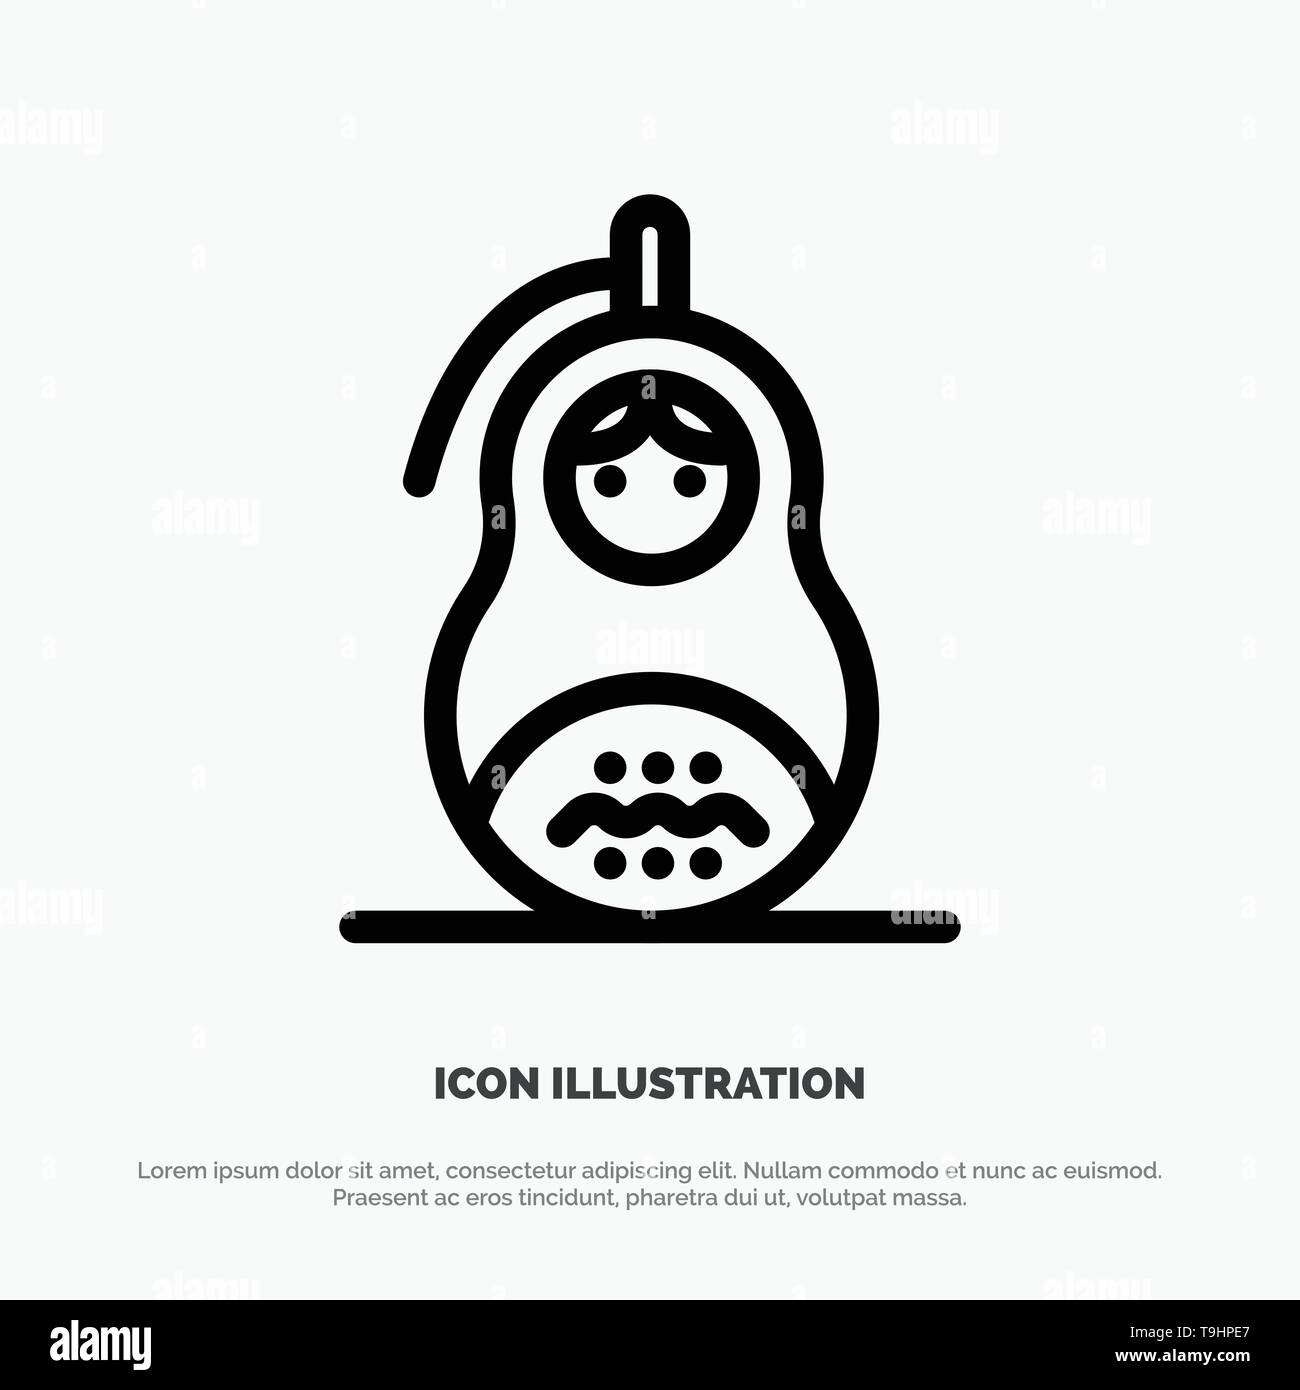 Fraud, Grenade, Matrioshka, Peace, Russia Line Icon Vector - Stock Image